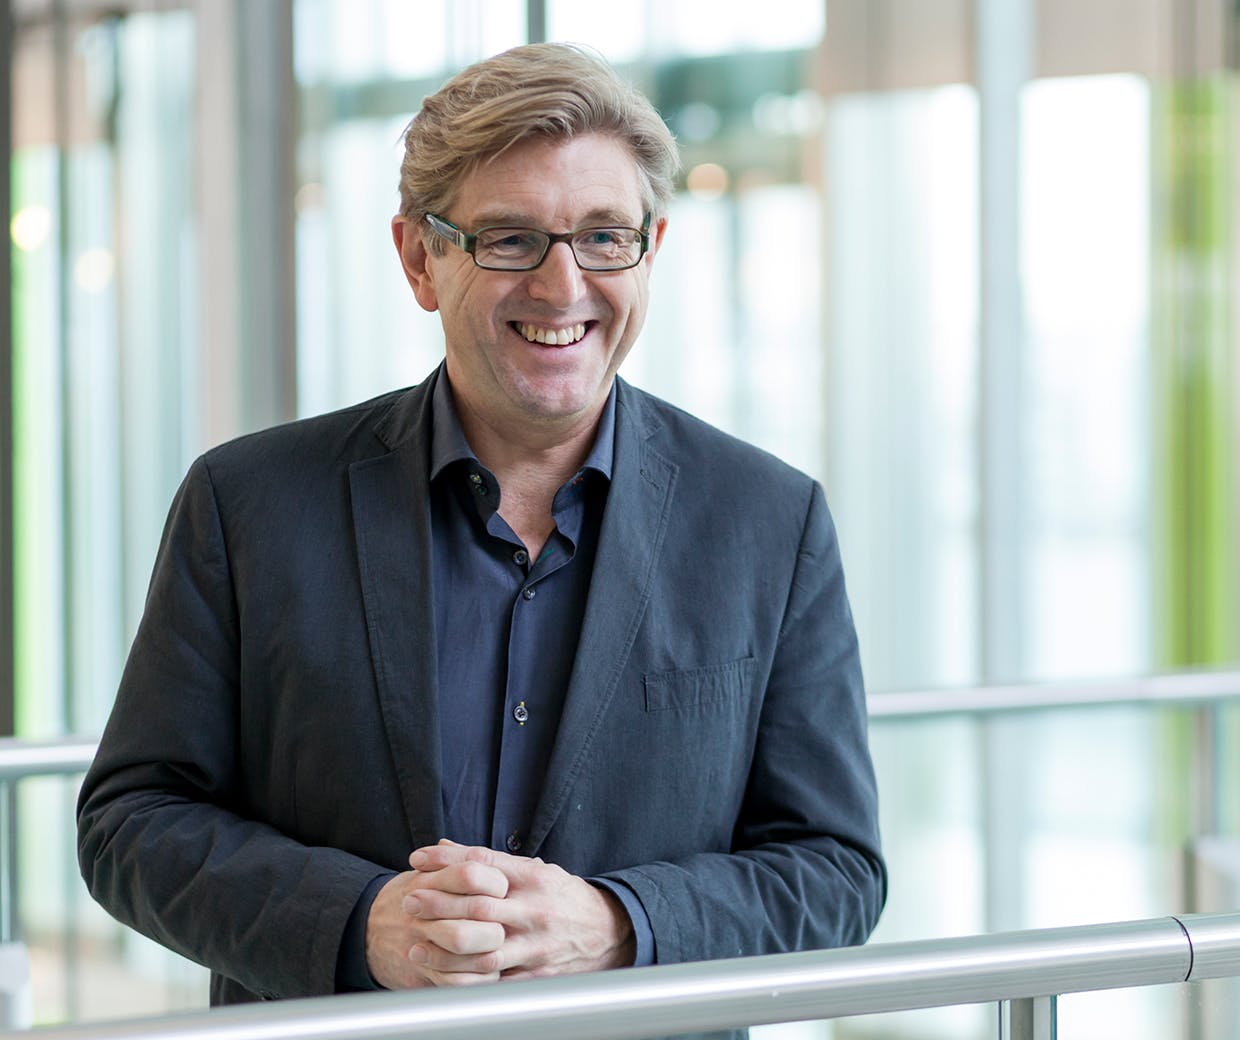 Top marketers on Keith Weed's impact on the industry